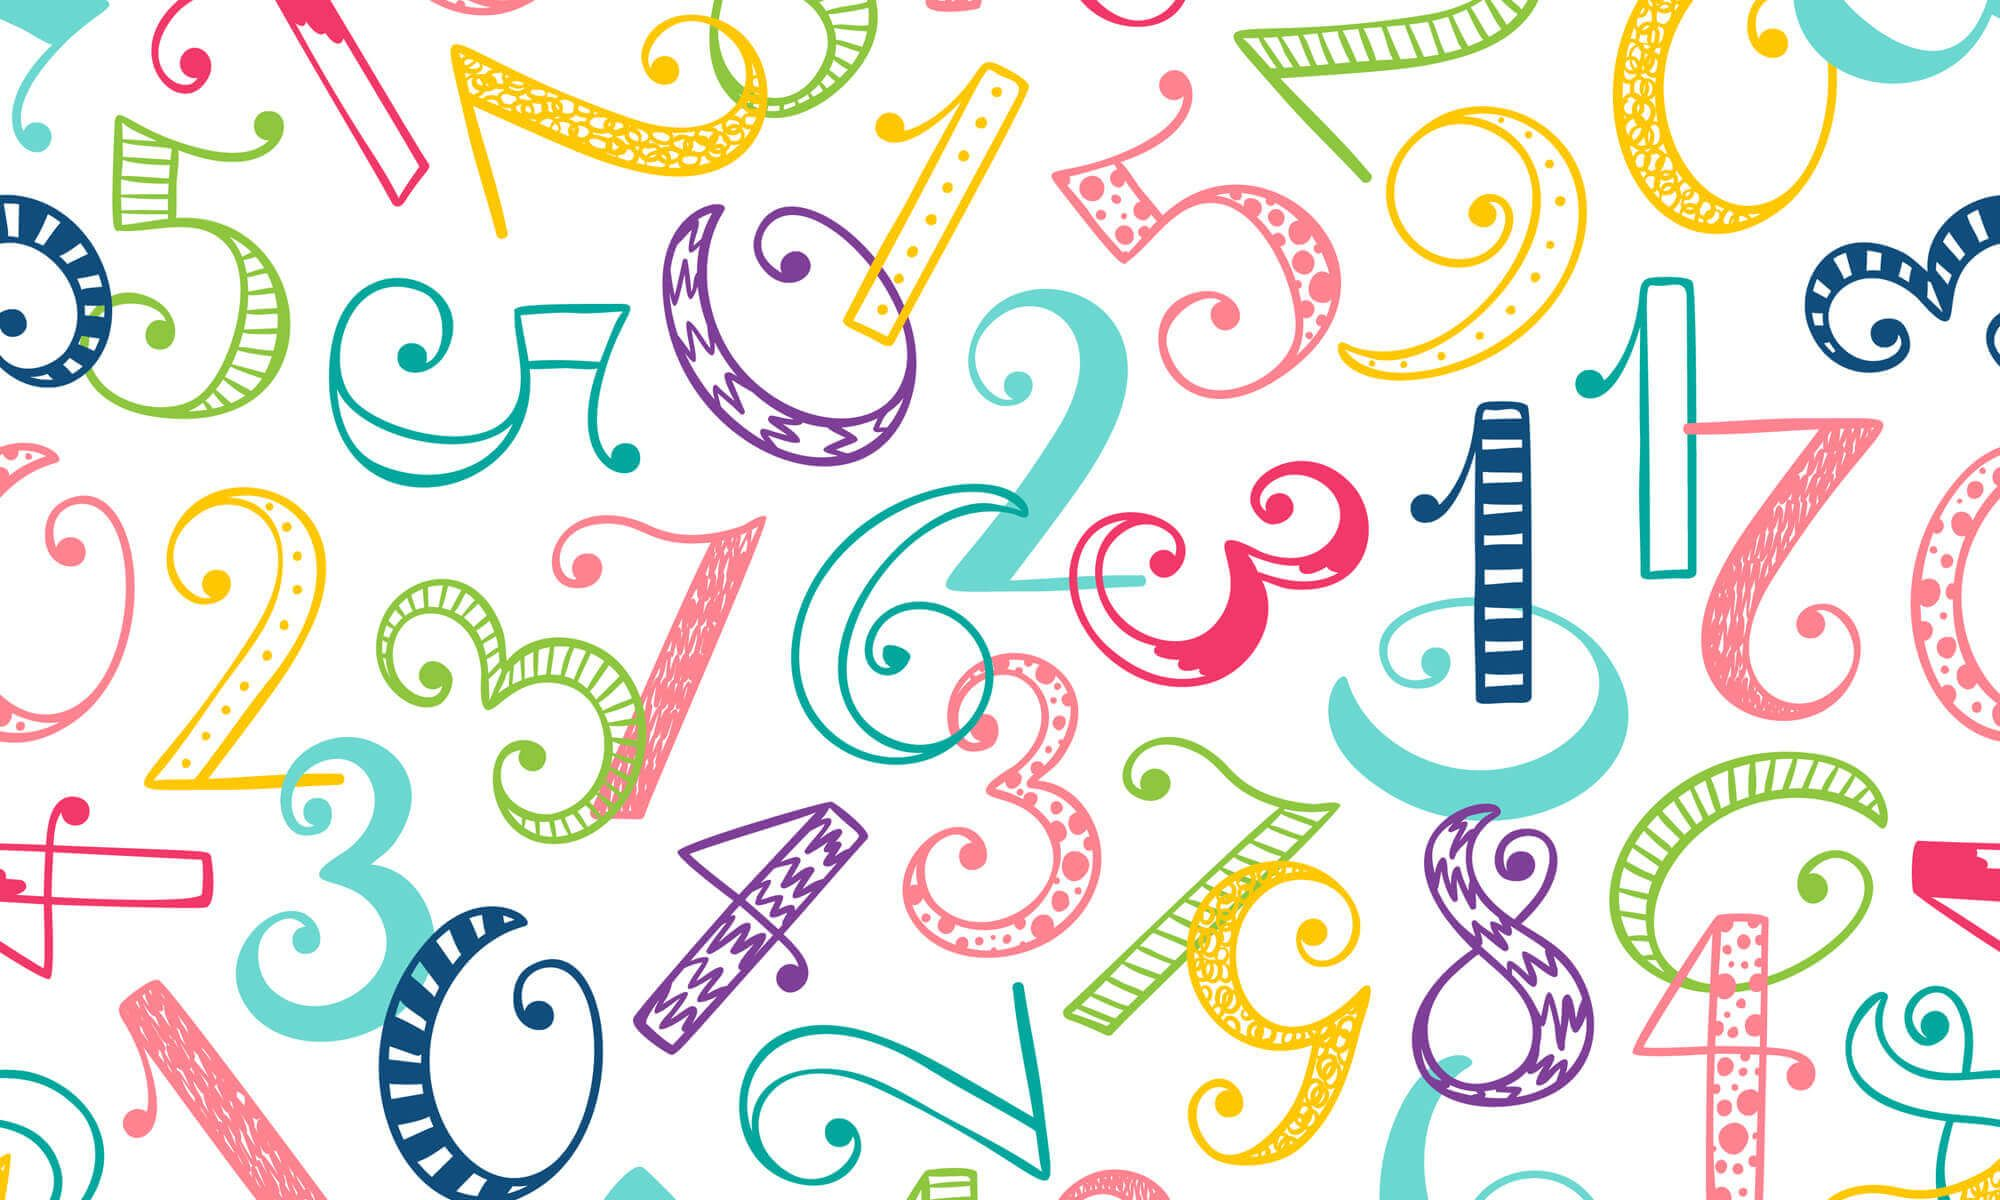 Abstract Number Wallpapers   Top Abstract Number Backgrounds 2000x1200